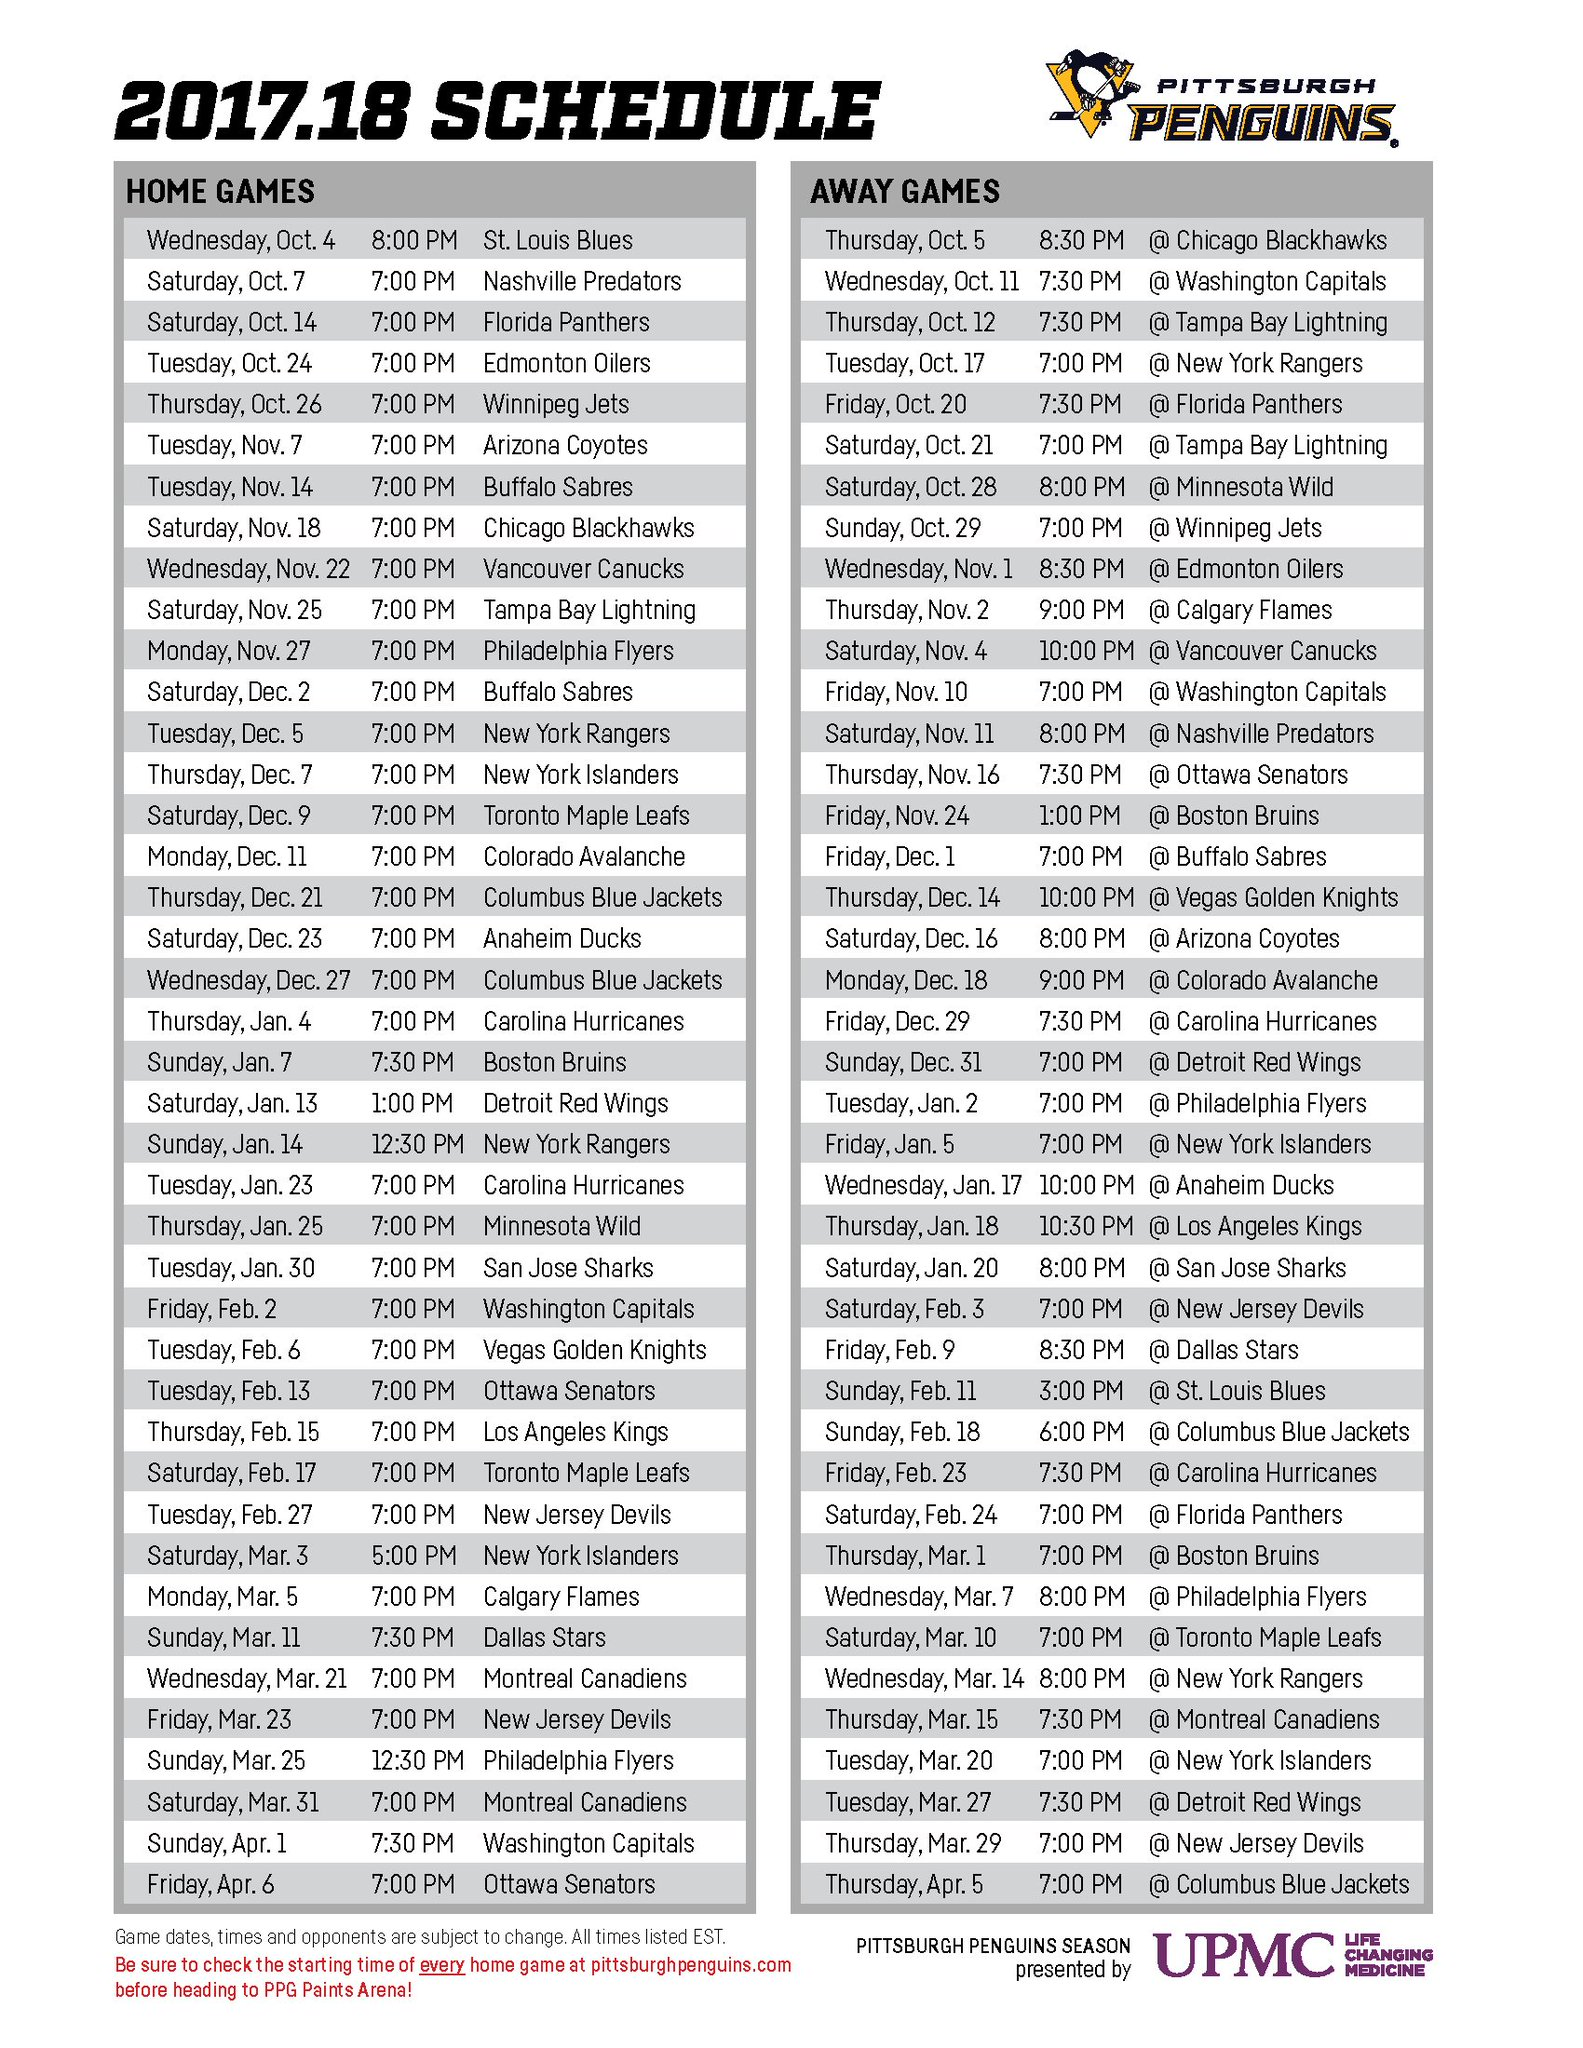 Dramatic image inside pittsburgh penguins printable schedule